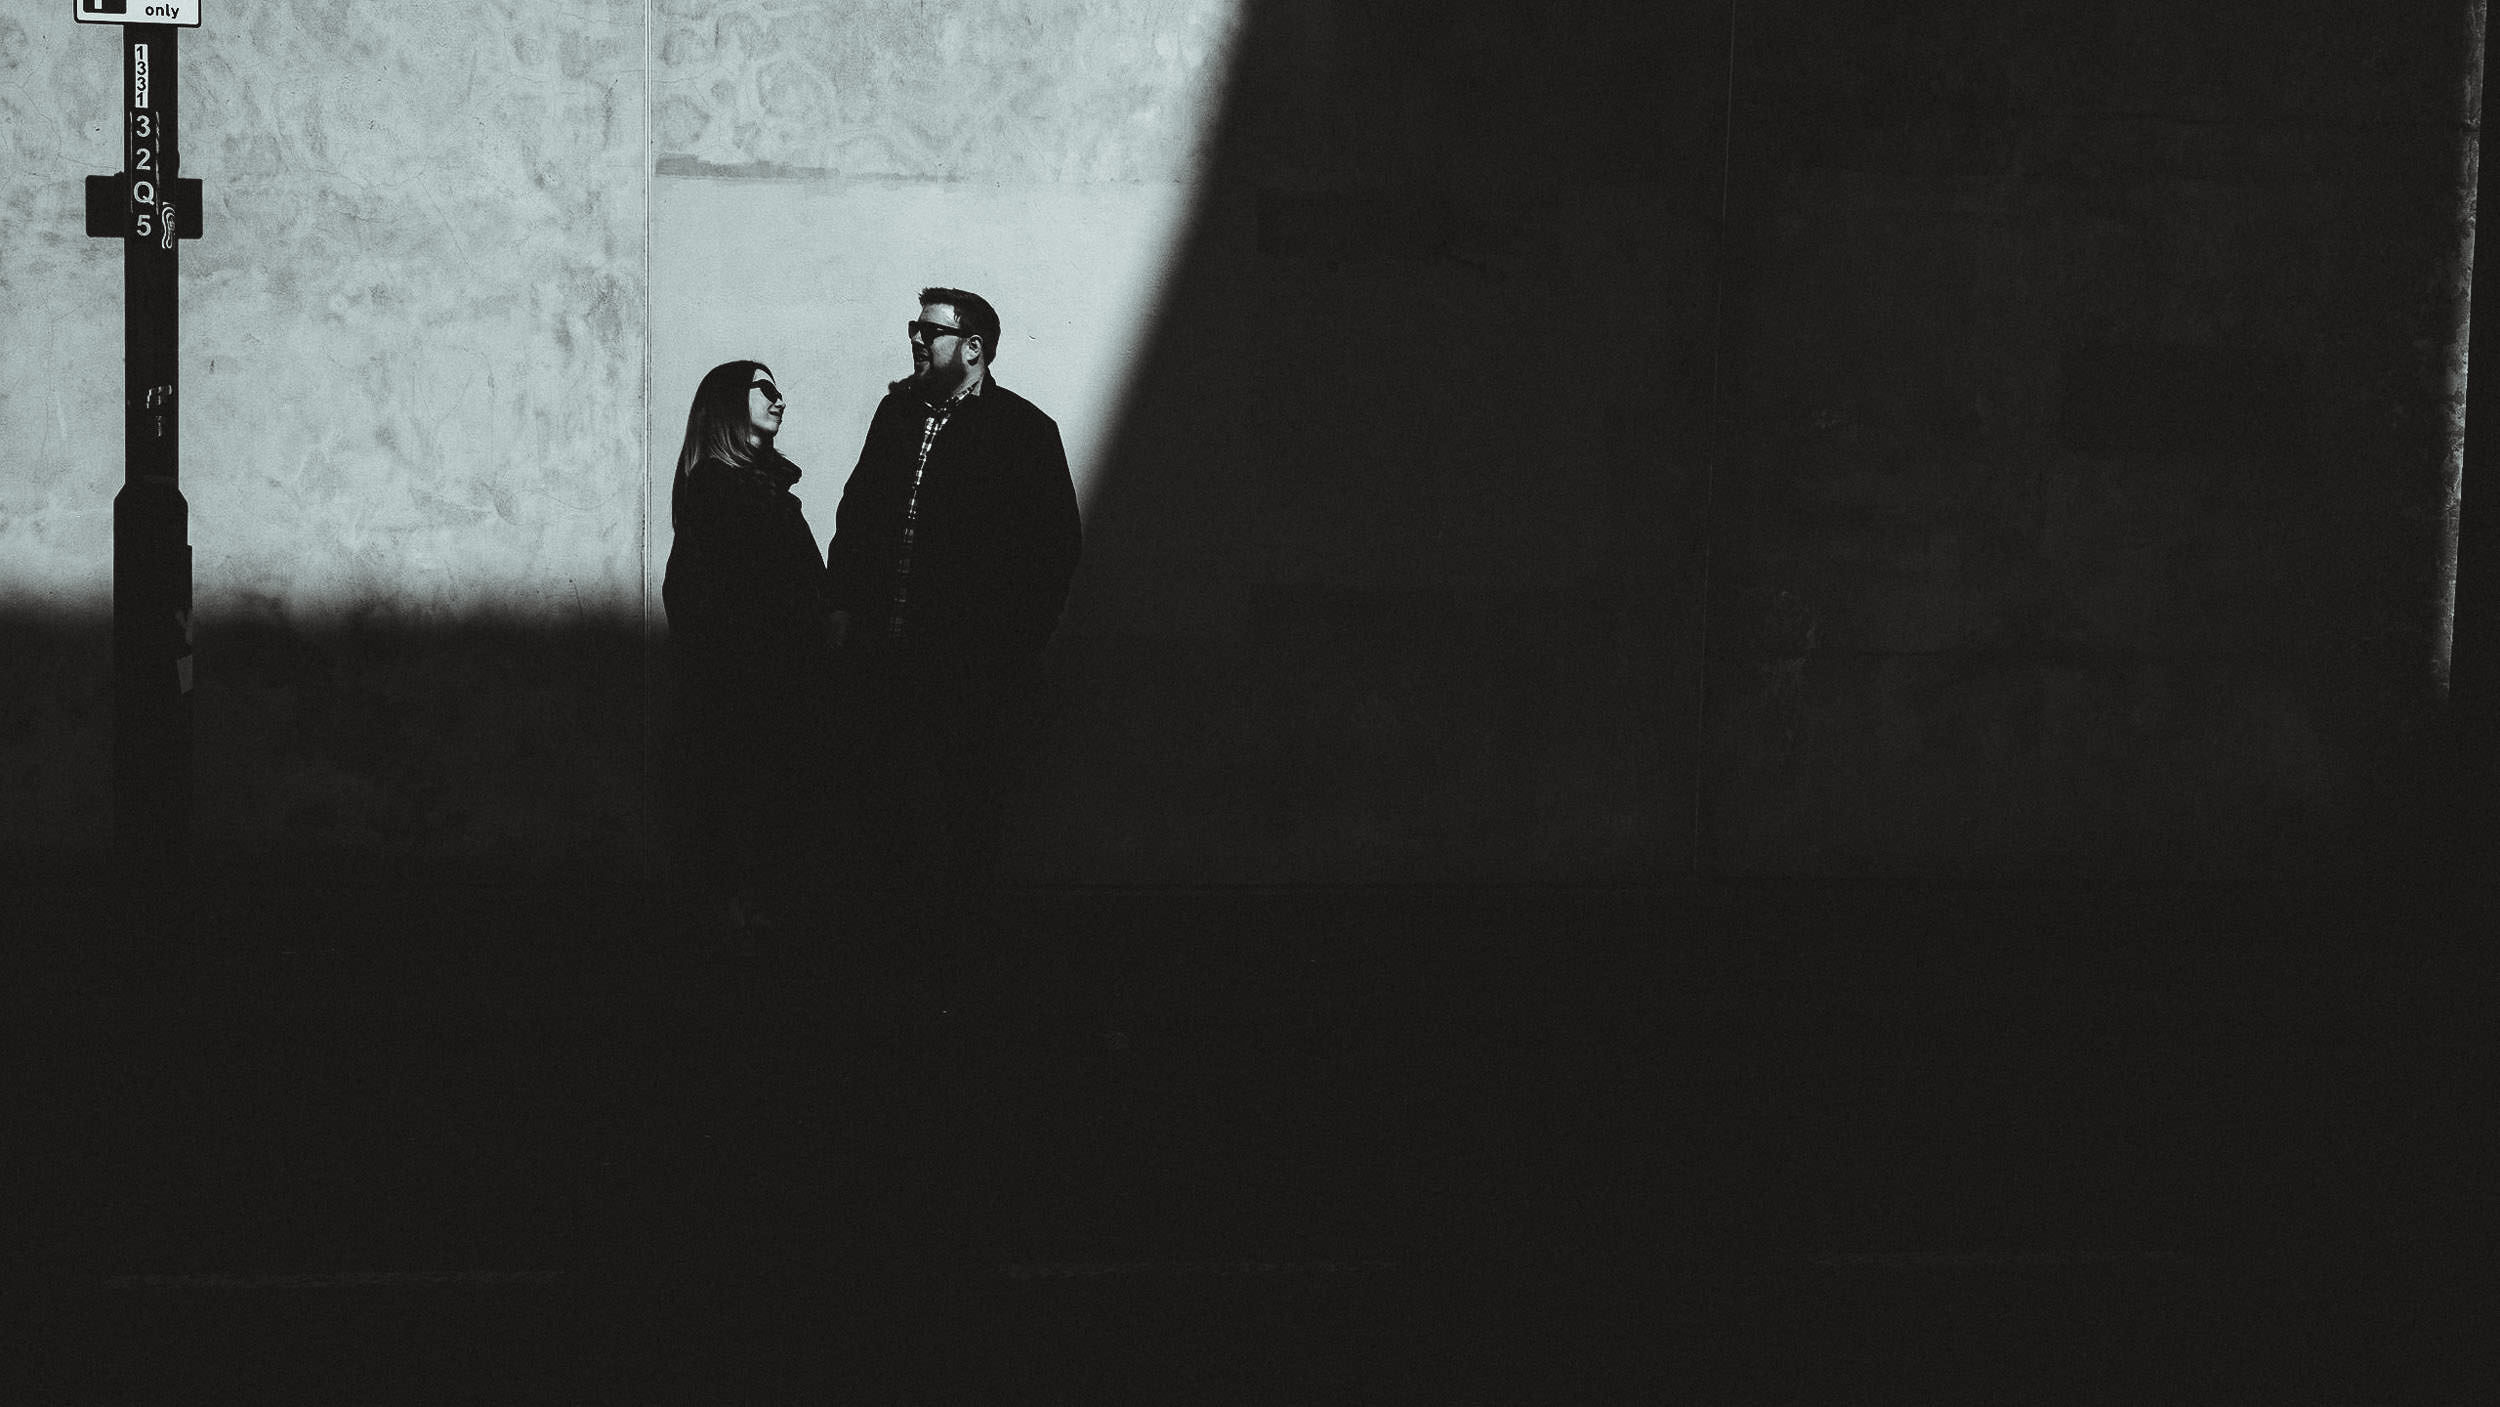 A black and white photo of a couple on Newcastle Quayside partly obscured by a large shadow